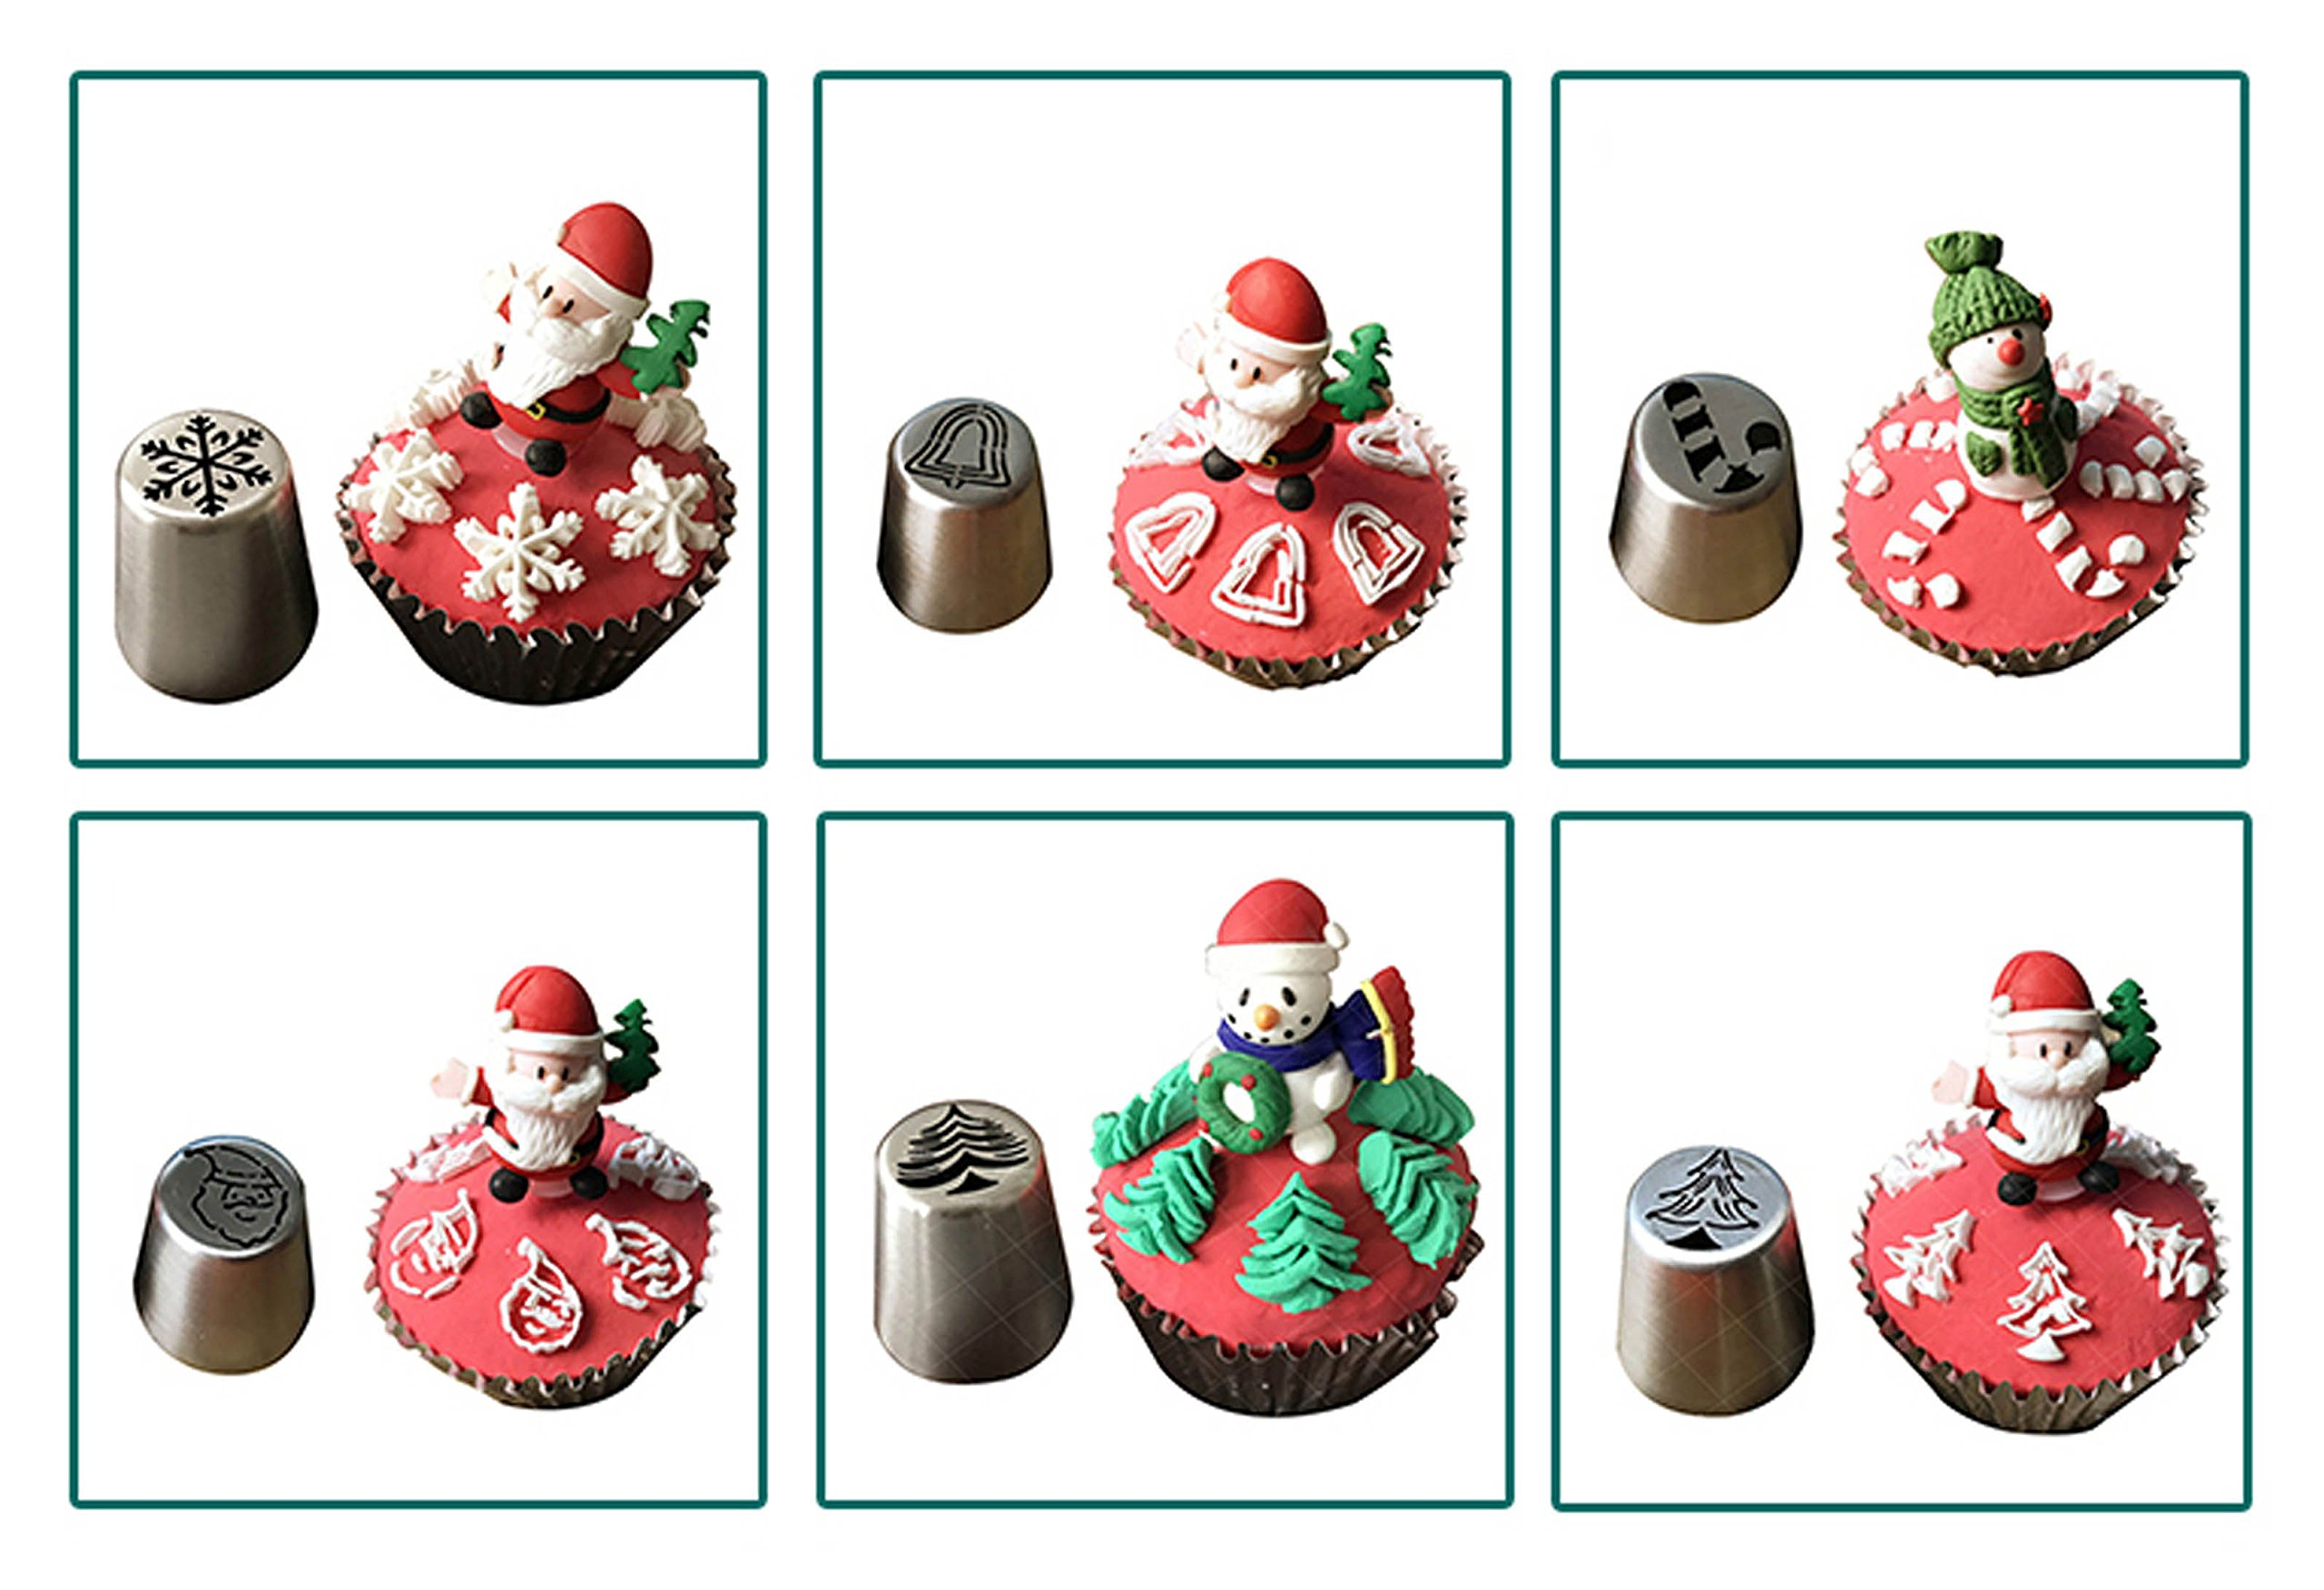 JJMG NEW Russian Icing Piping Tips Christmas Design For Cakes Cupcakes Cookies - Decoration Pastry Baking Tools by JJMG (Image #4)